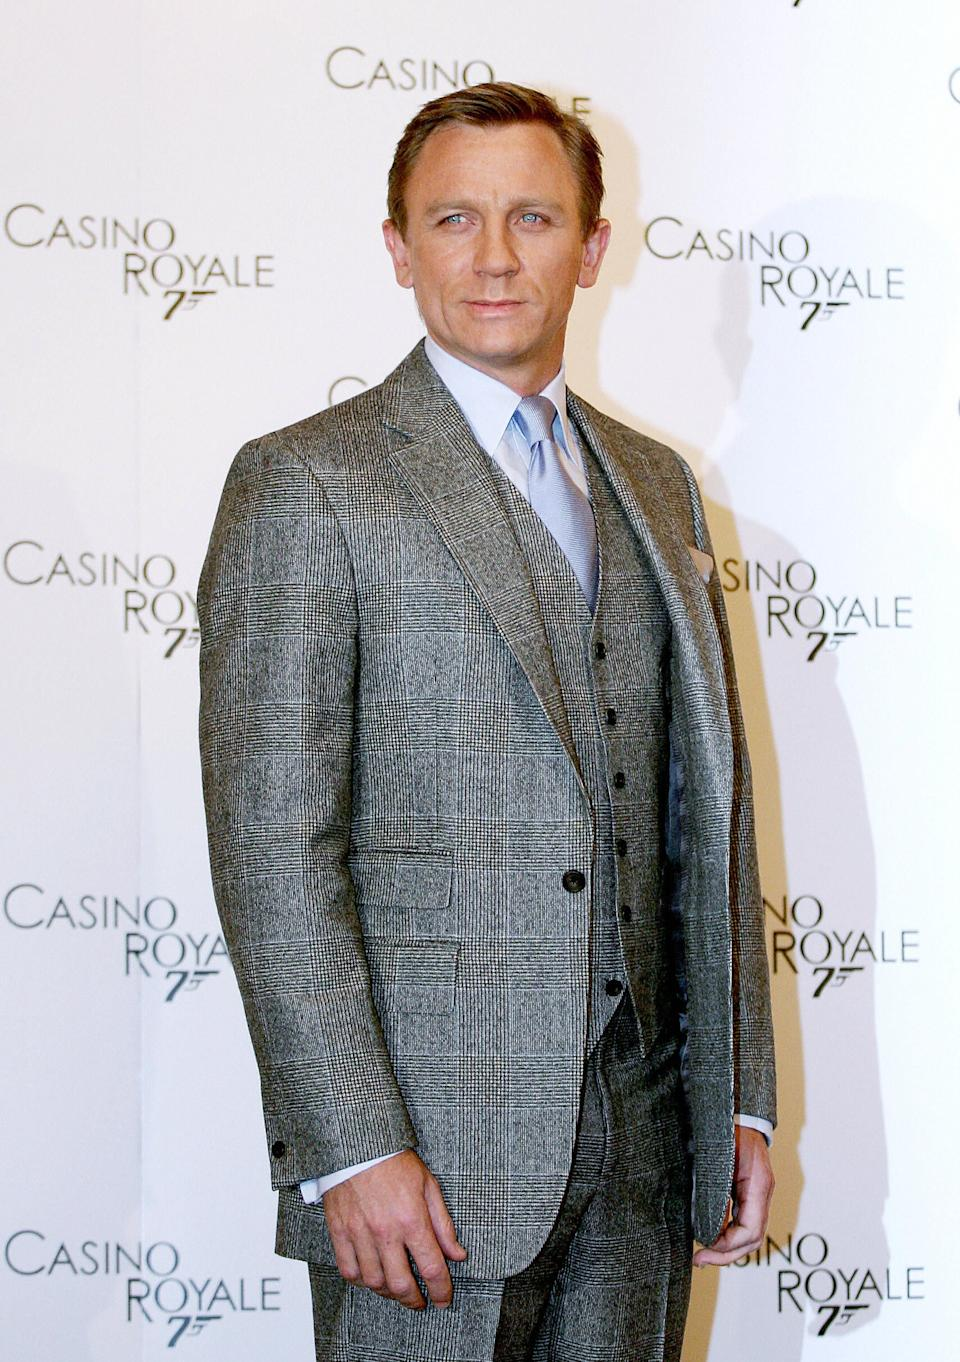 Craig during the promotion for Casino Royale in 2006 (AFP via Getty Images)